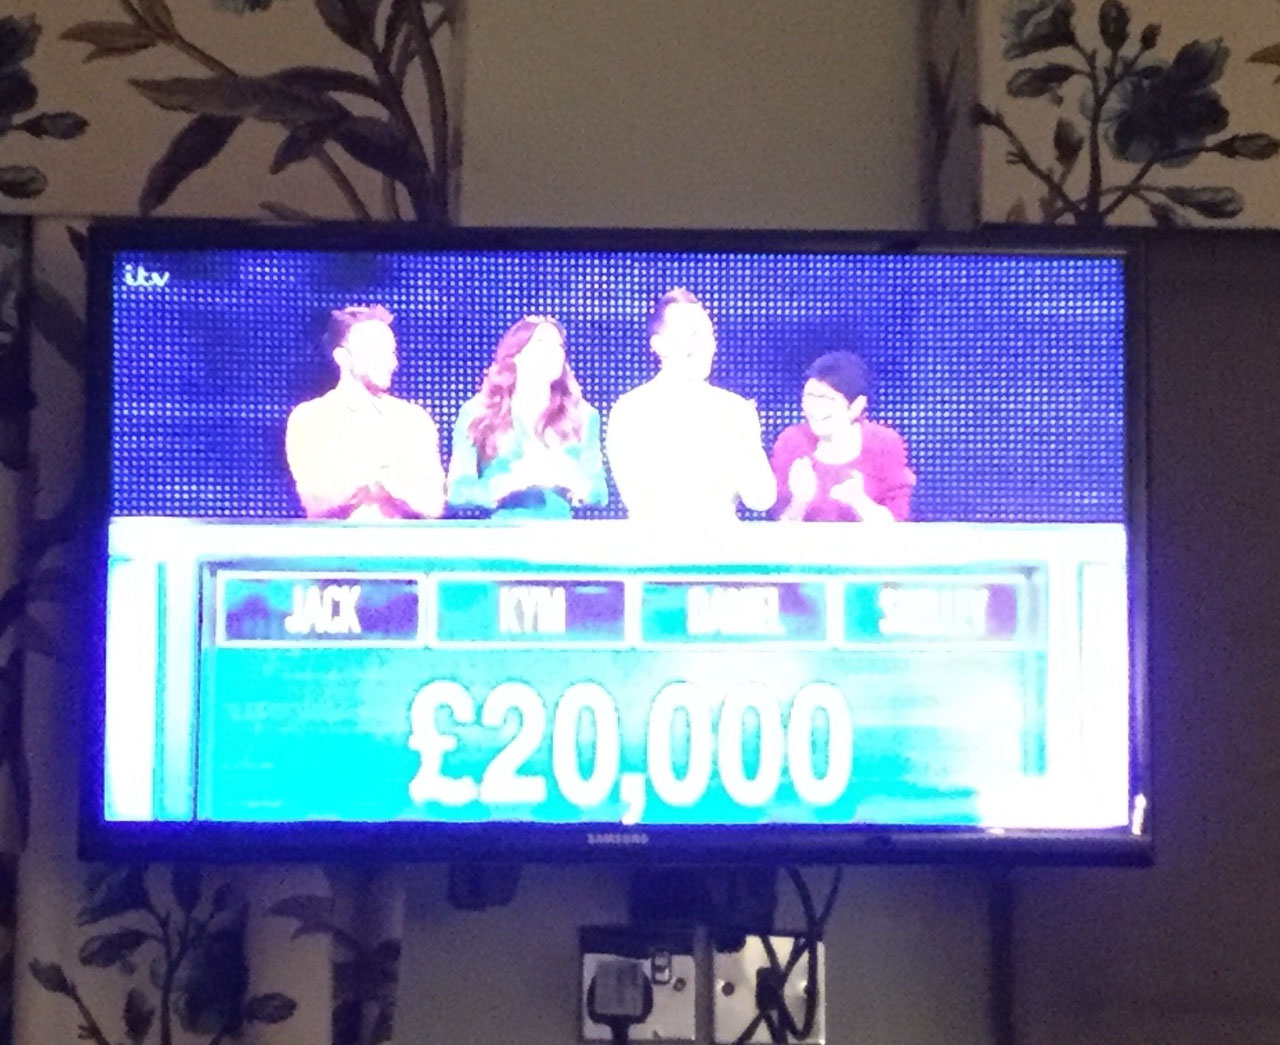 And the Corrie Team beat the Chaser